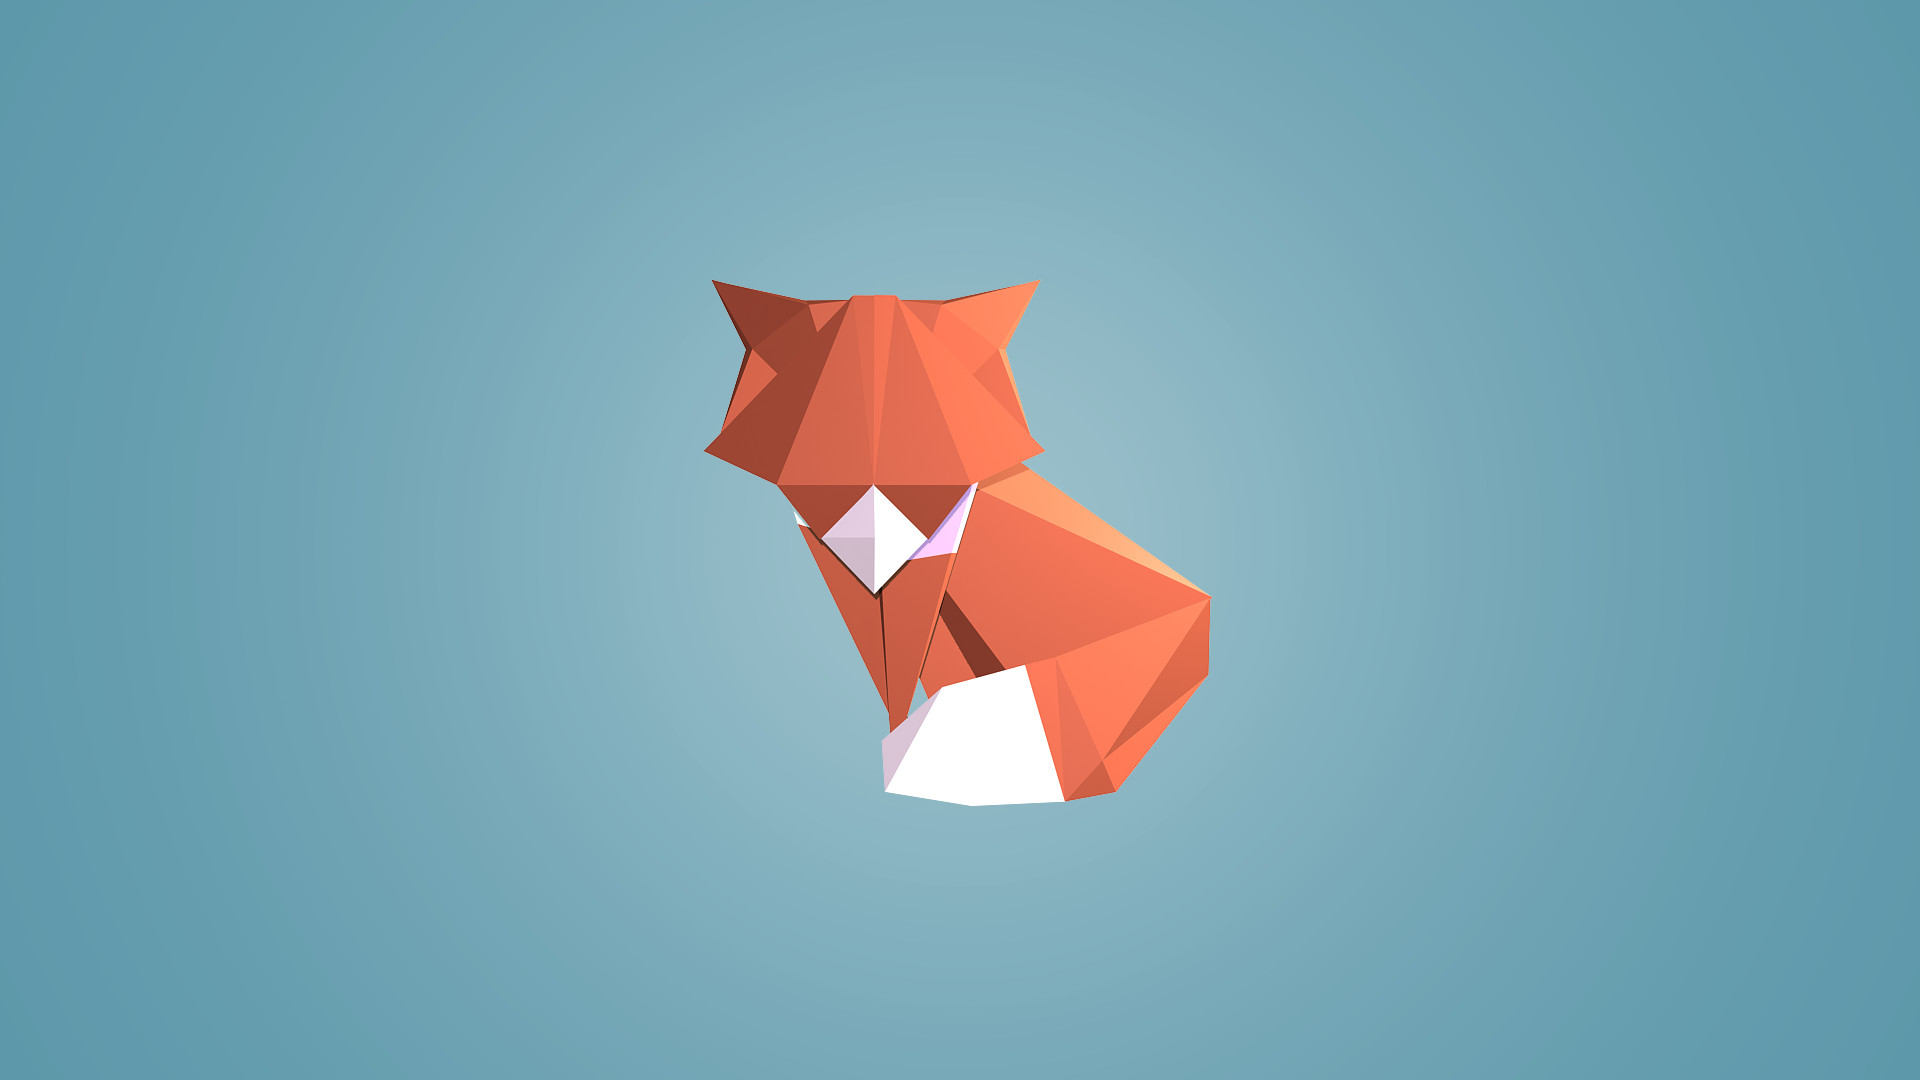 1920x1080 Abstract Geometric Colored Shapes Desktop PC And Mac Wallpaper